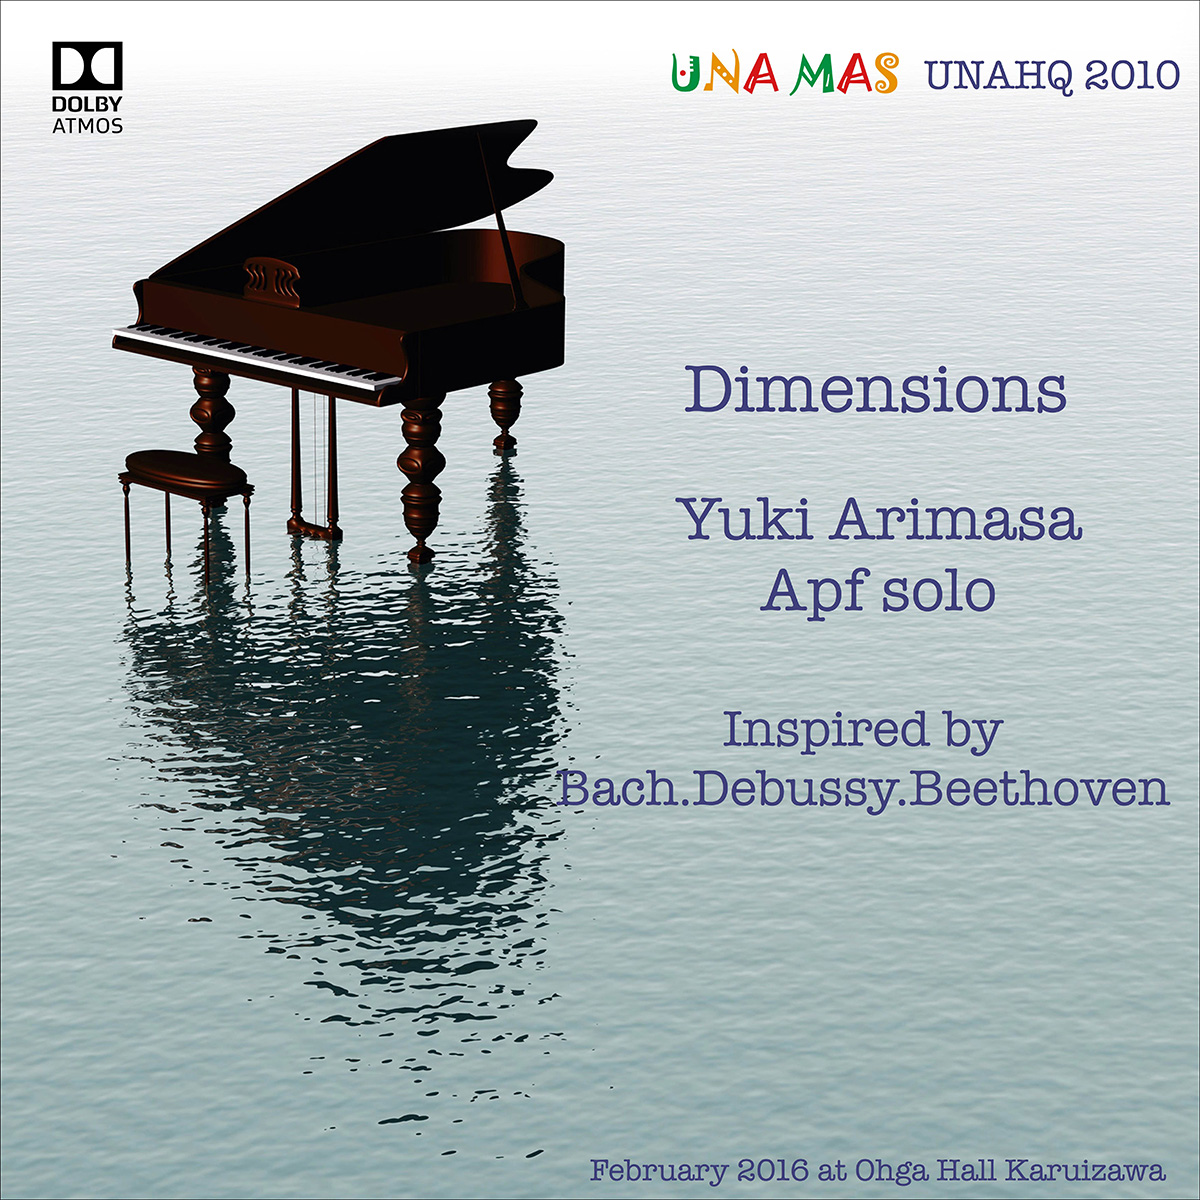 UNAHQ 2010 DIMENSIONS - Dolby Atmos